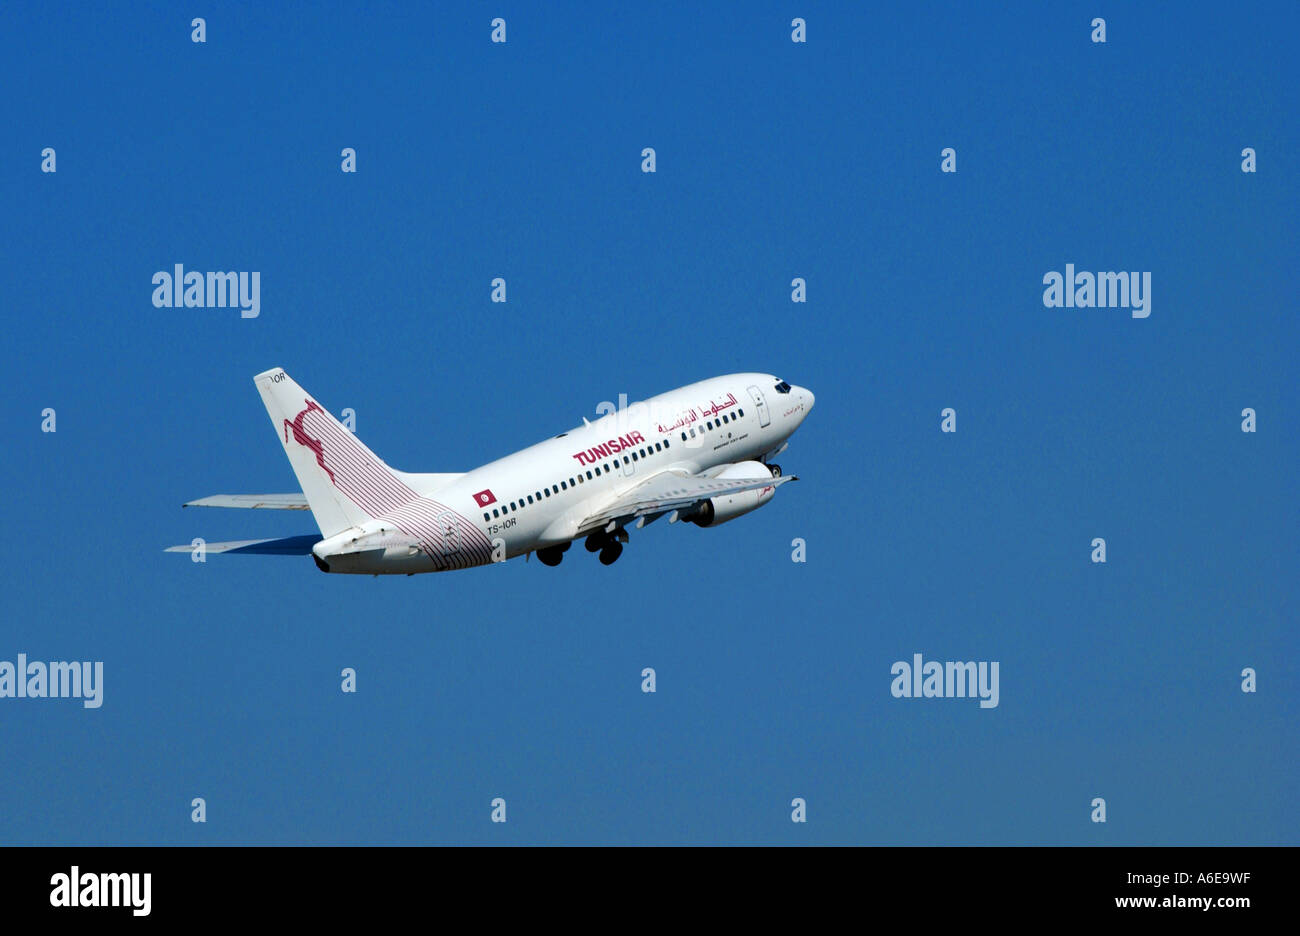 TunisAir airplane in the blue sky - Stock Image